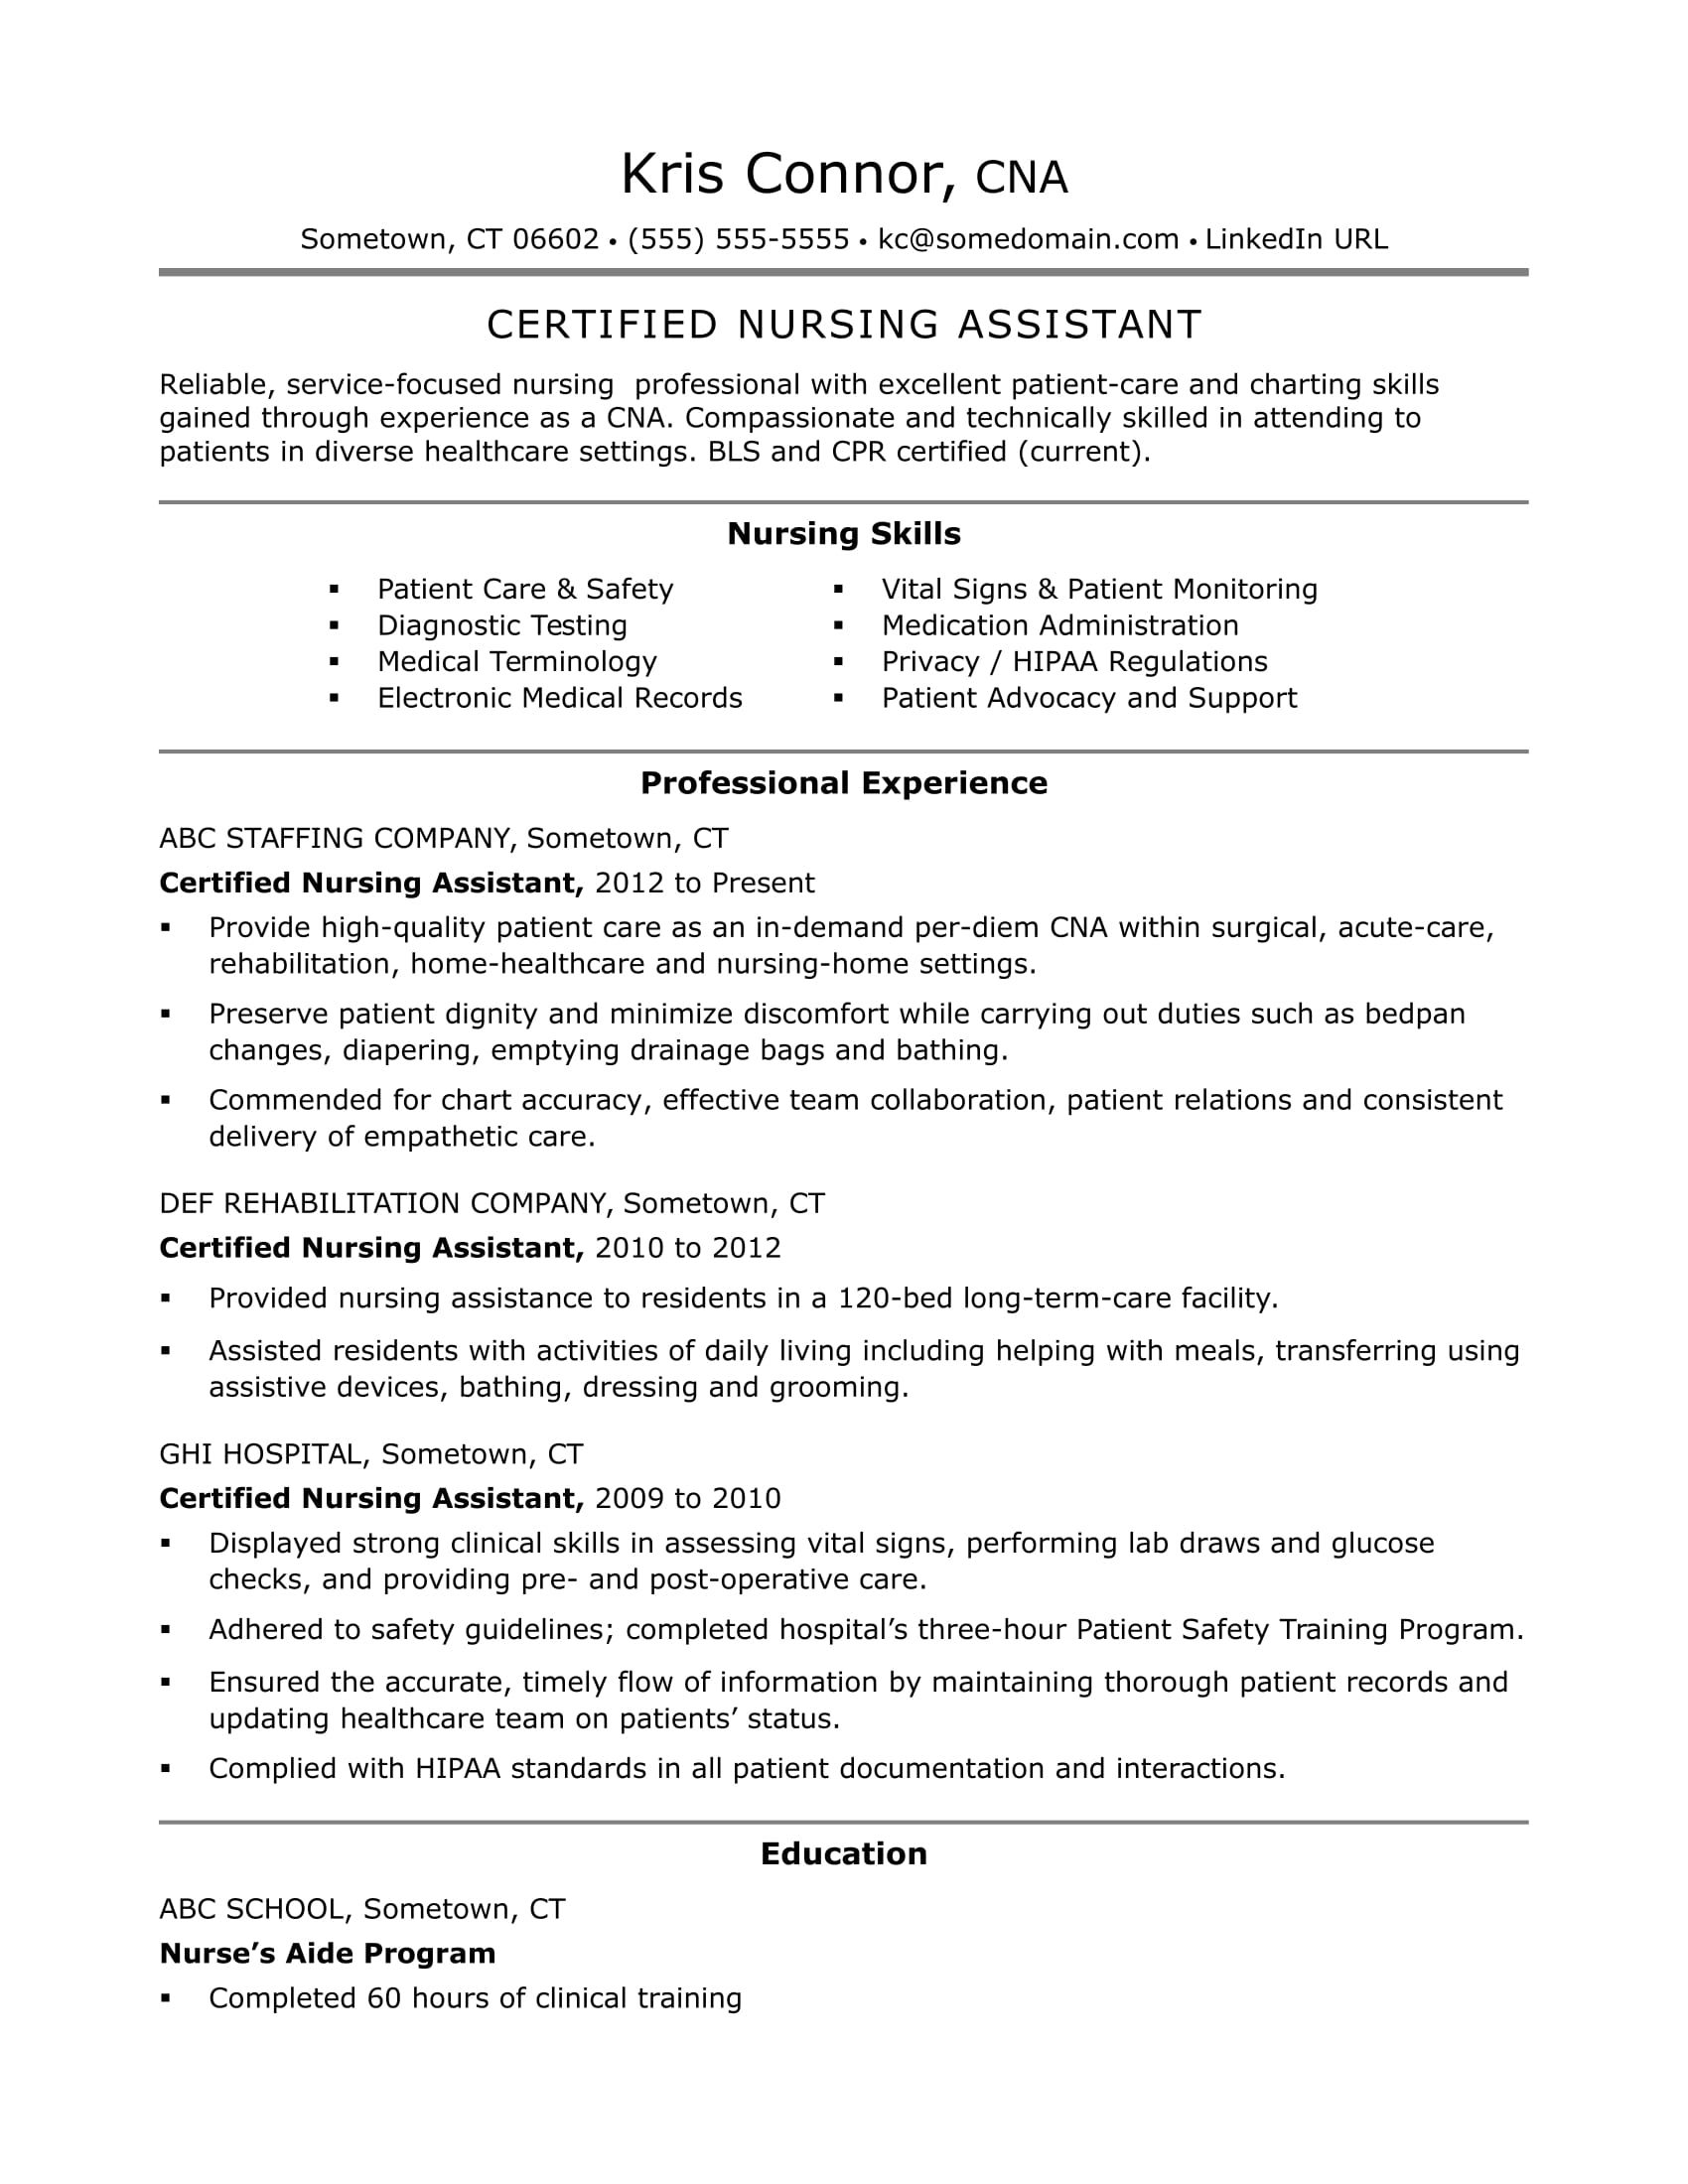 Perfect CNA Resume Example For Skills For Cna Resume